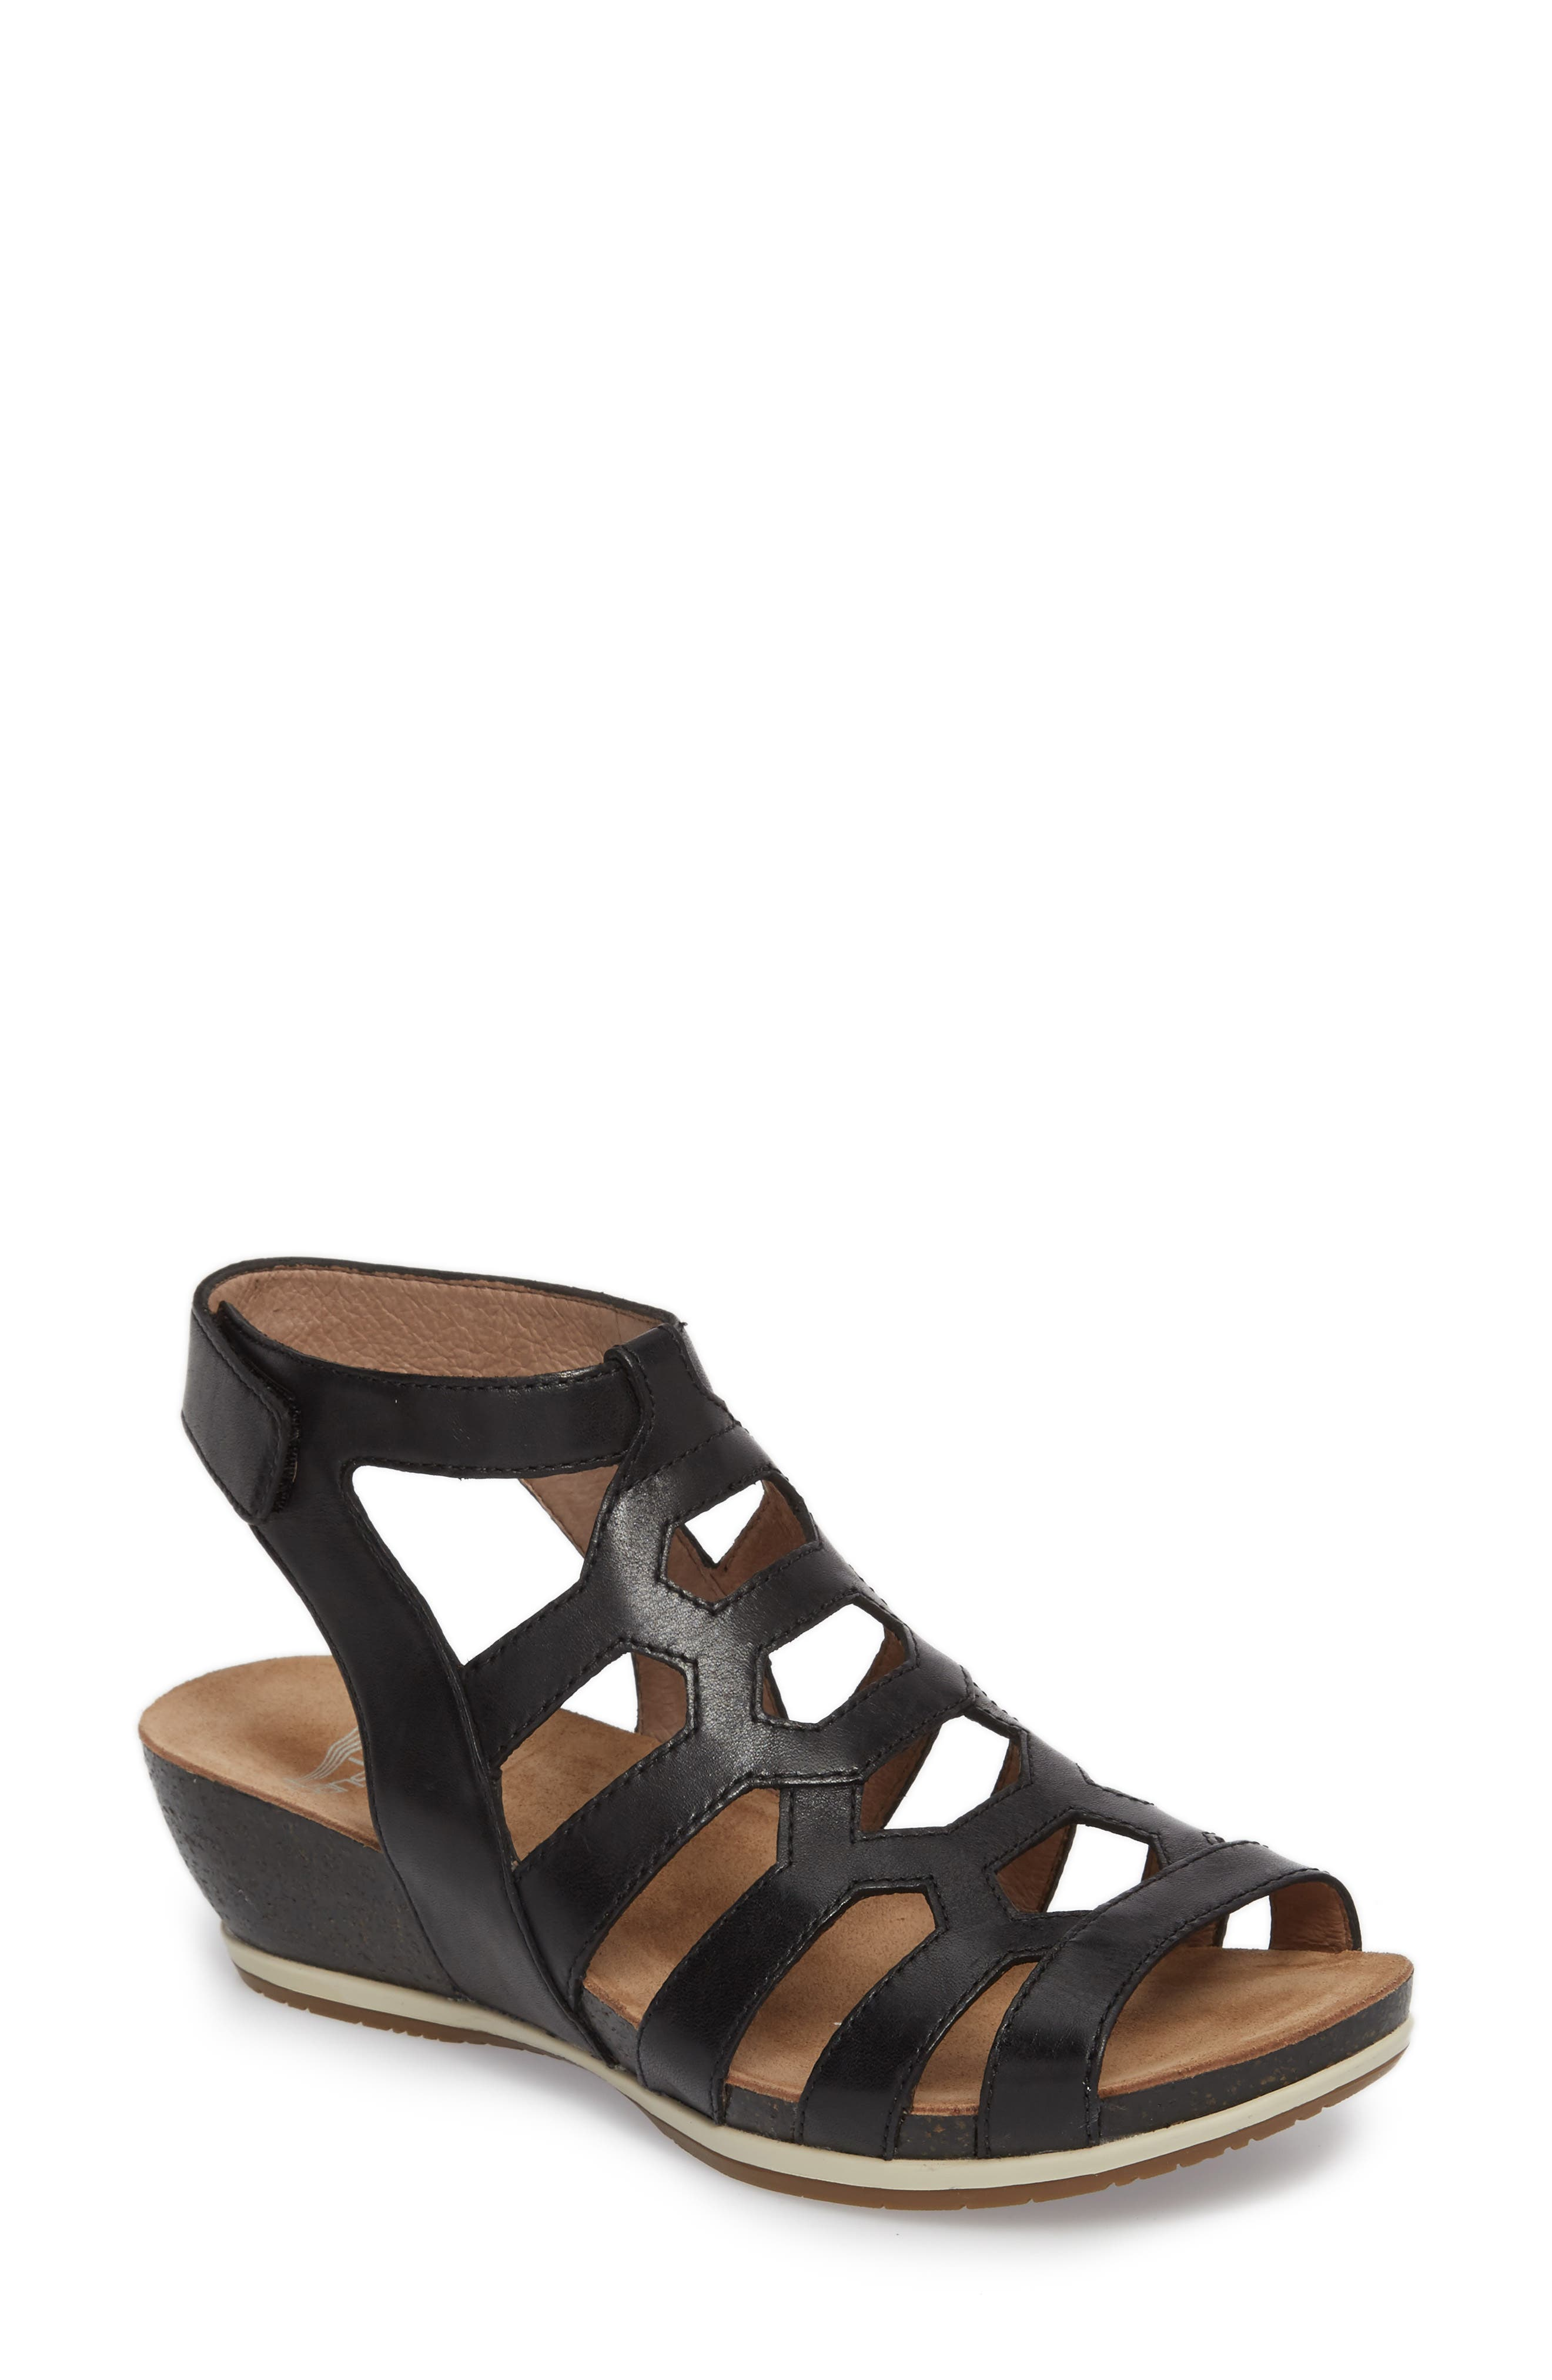 Valentina Caged Wedge Sandal,                             Main thumbnail 1, color,                             001